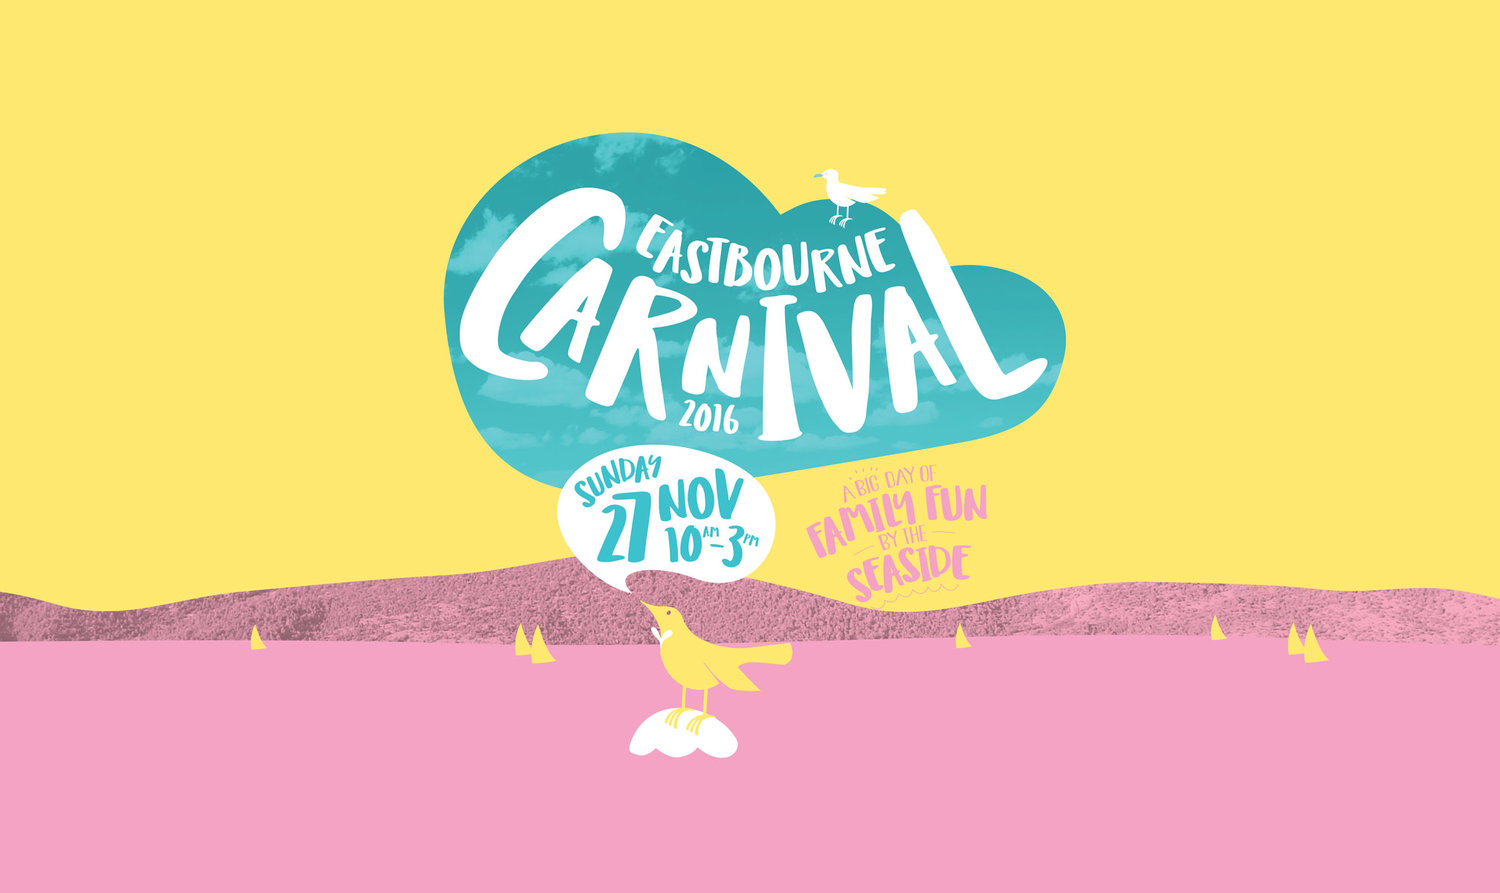 The Eastbourne Carnival poster captures the feeling of a fun family day out by the seaside. Designed with Salted Herring.